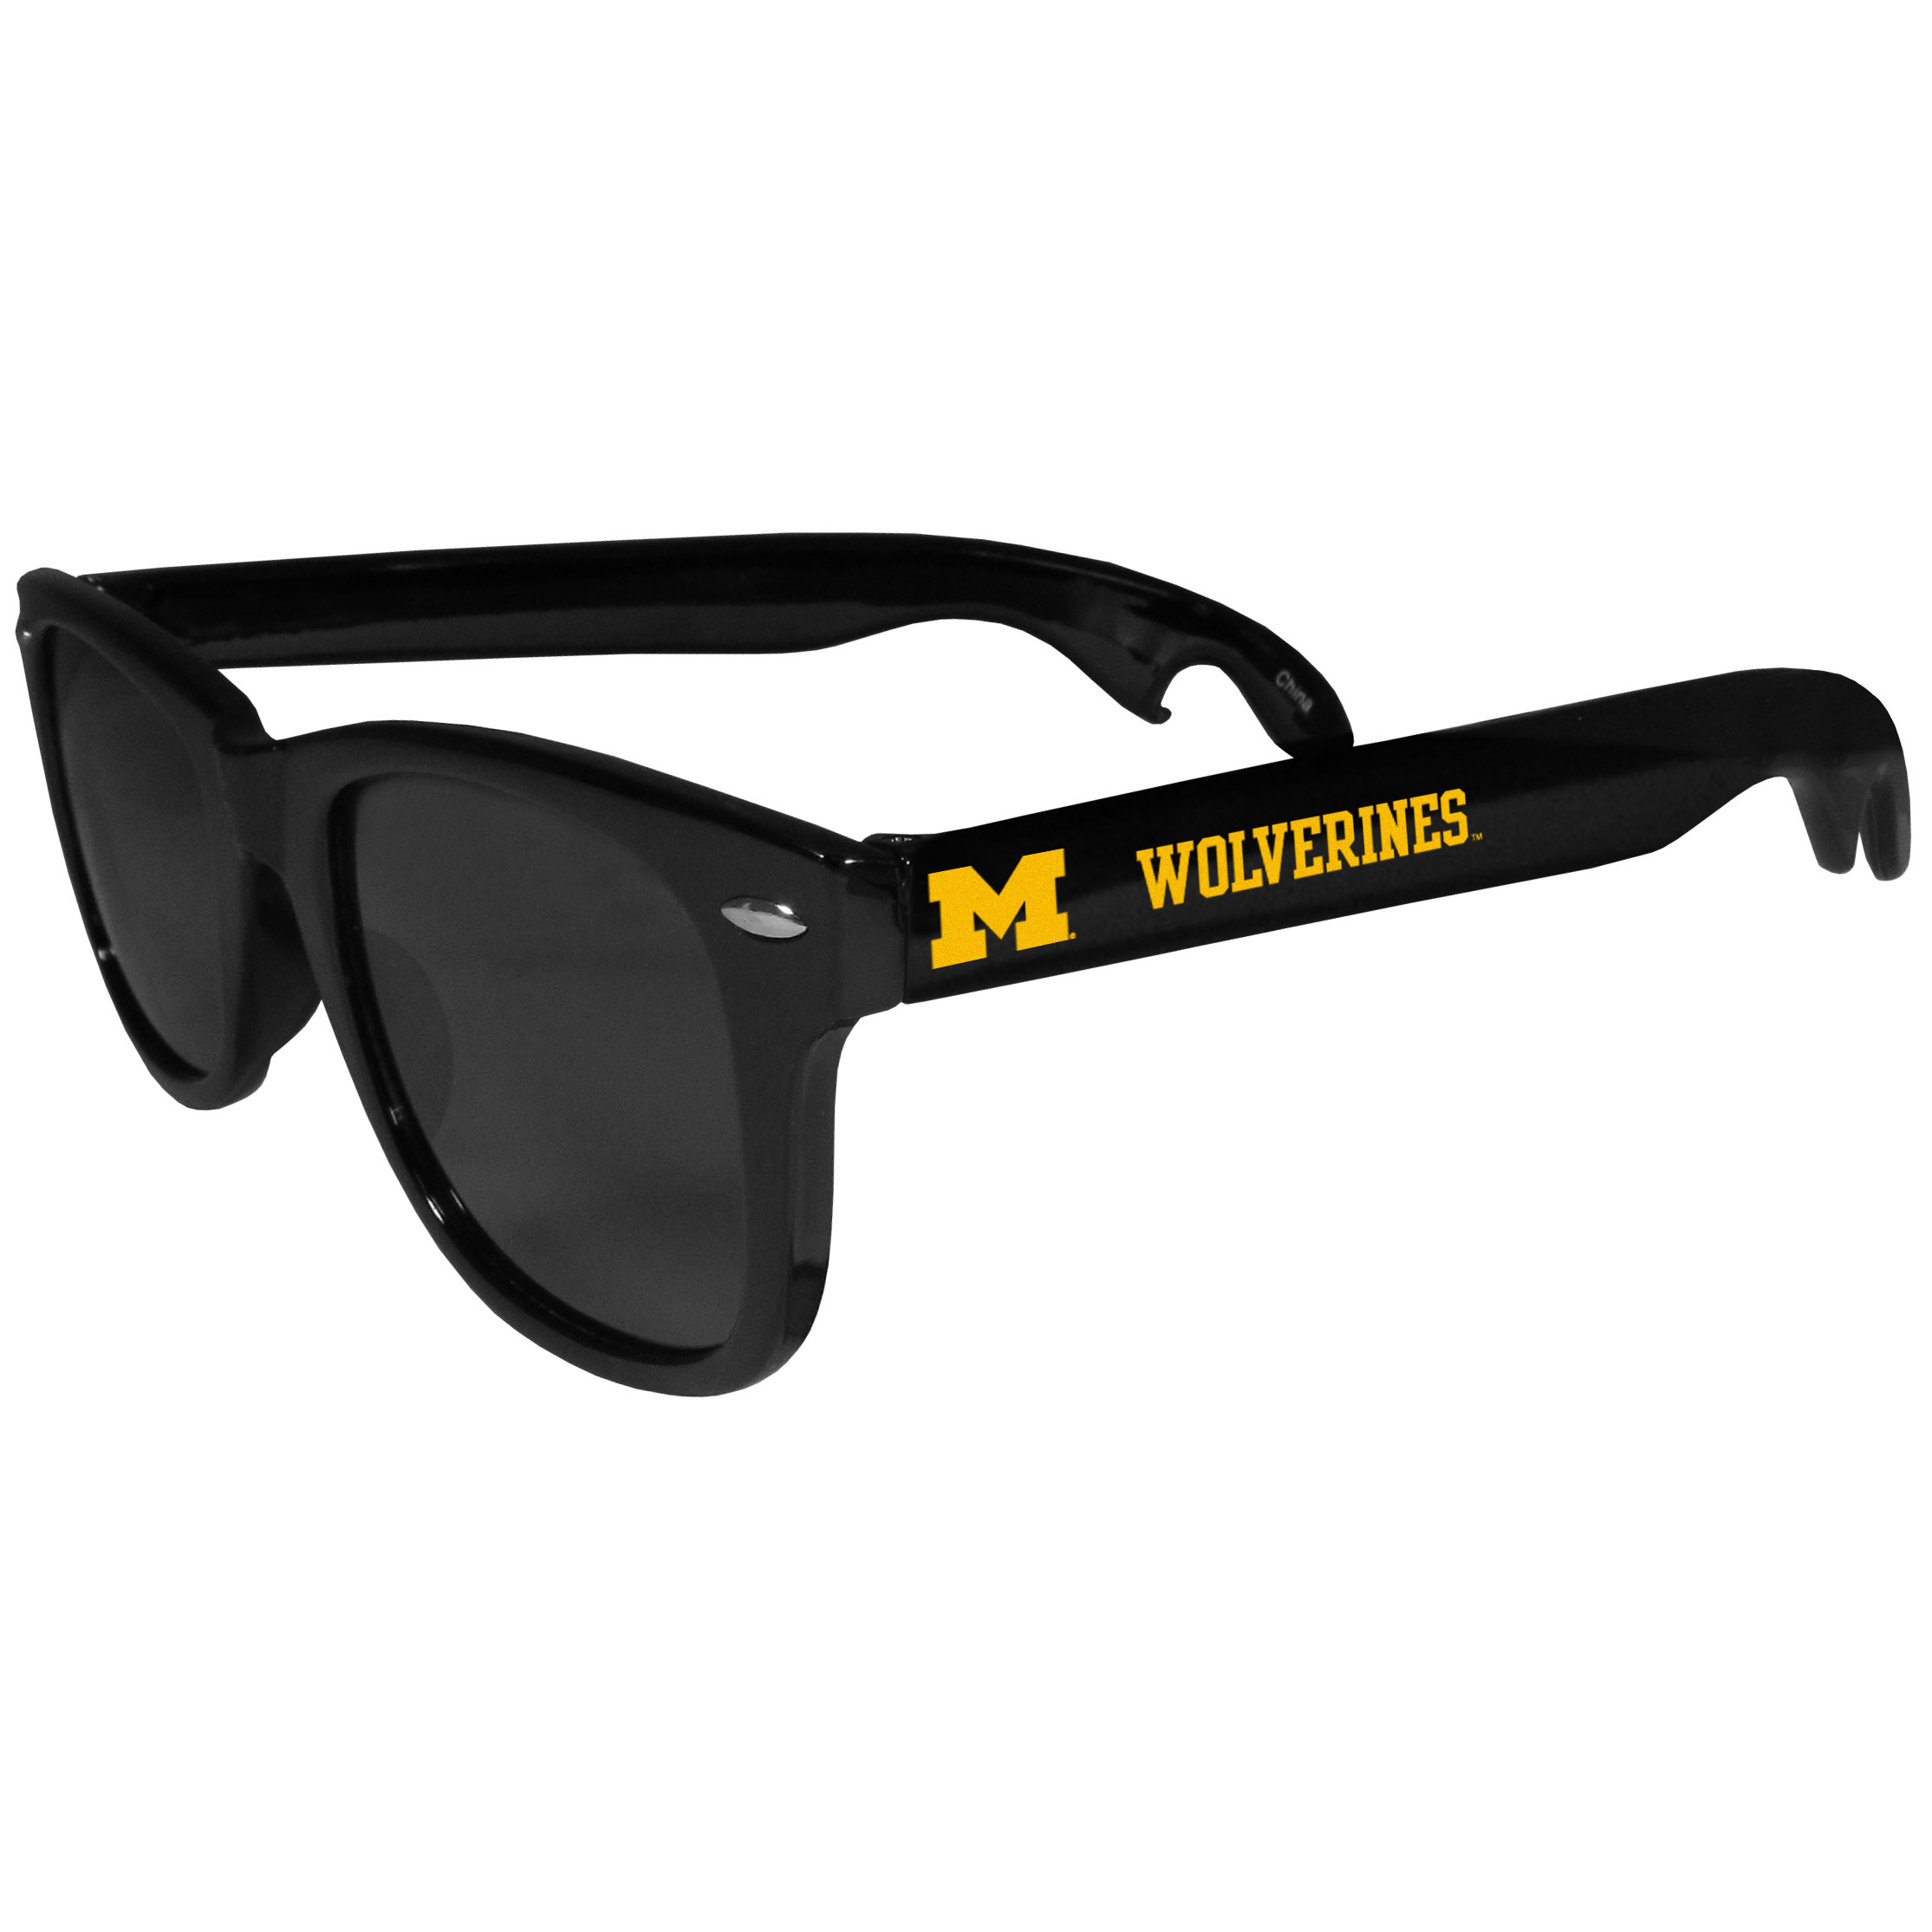 Michigan Wolverines Beachfarer Bottle Opener Sunglasses - Seriously, these sunglasses open bottles! Keep the party going with these amazing Michigan Wolverines bottle opener sunglasses. The stylish retro frames feature team designs on the arms and functional bottle openers on the end of the arms. Whether you are at the beach or having a backyard BBQ on game day, these shades will keep your eyes protected with 100% UVA/UVB protection and keep you hydrated with the handy bottle opener arms.